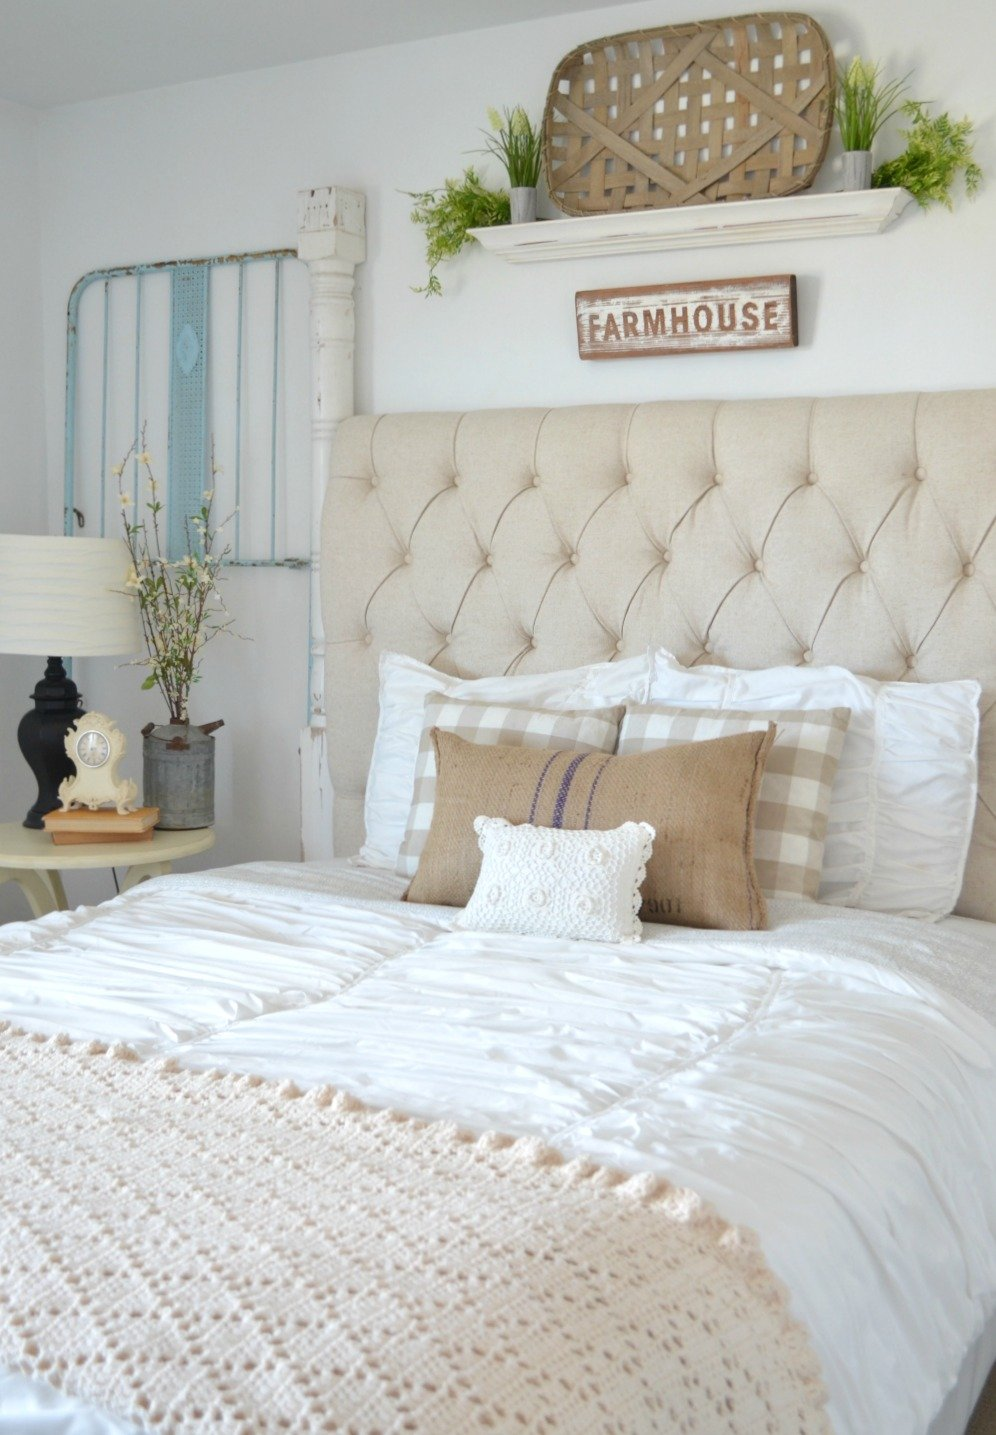 Vintage Crib Frame In Guest Bedroom Vintage Farmhouse Bedroom